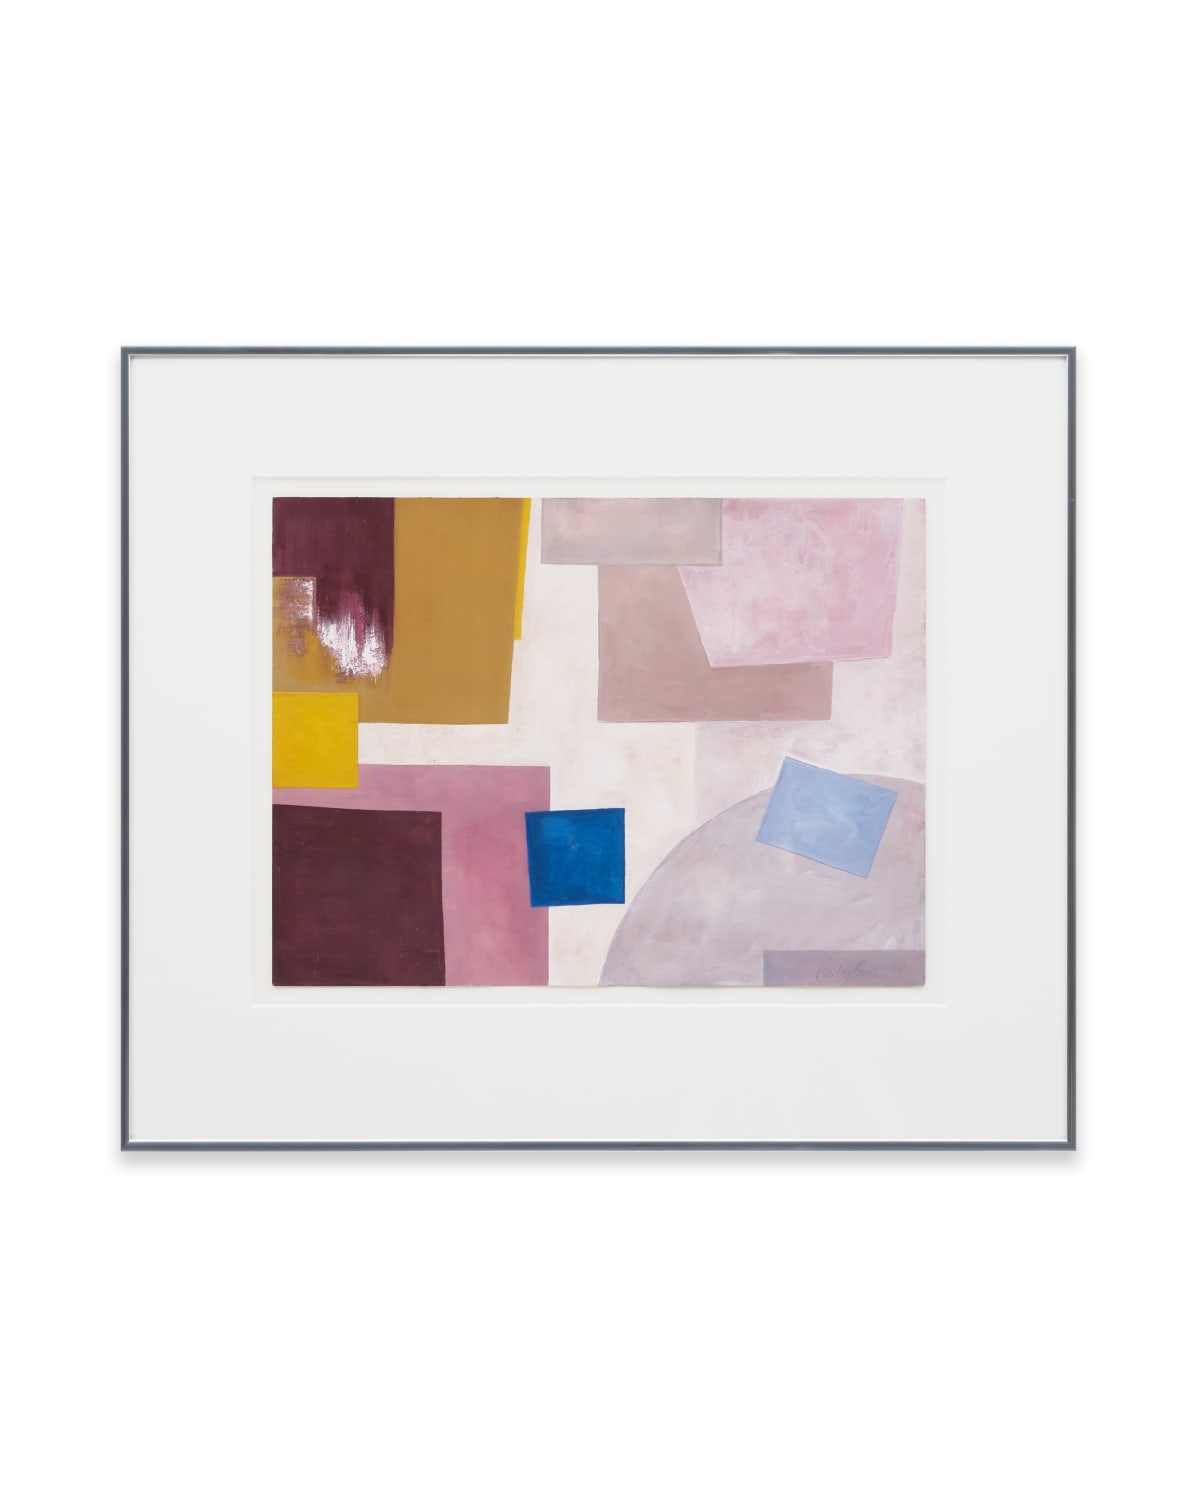 Emily Buck, Composition 1